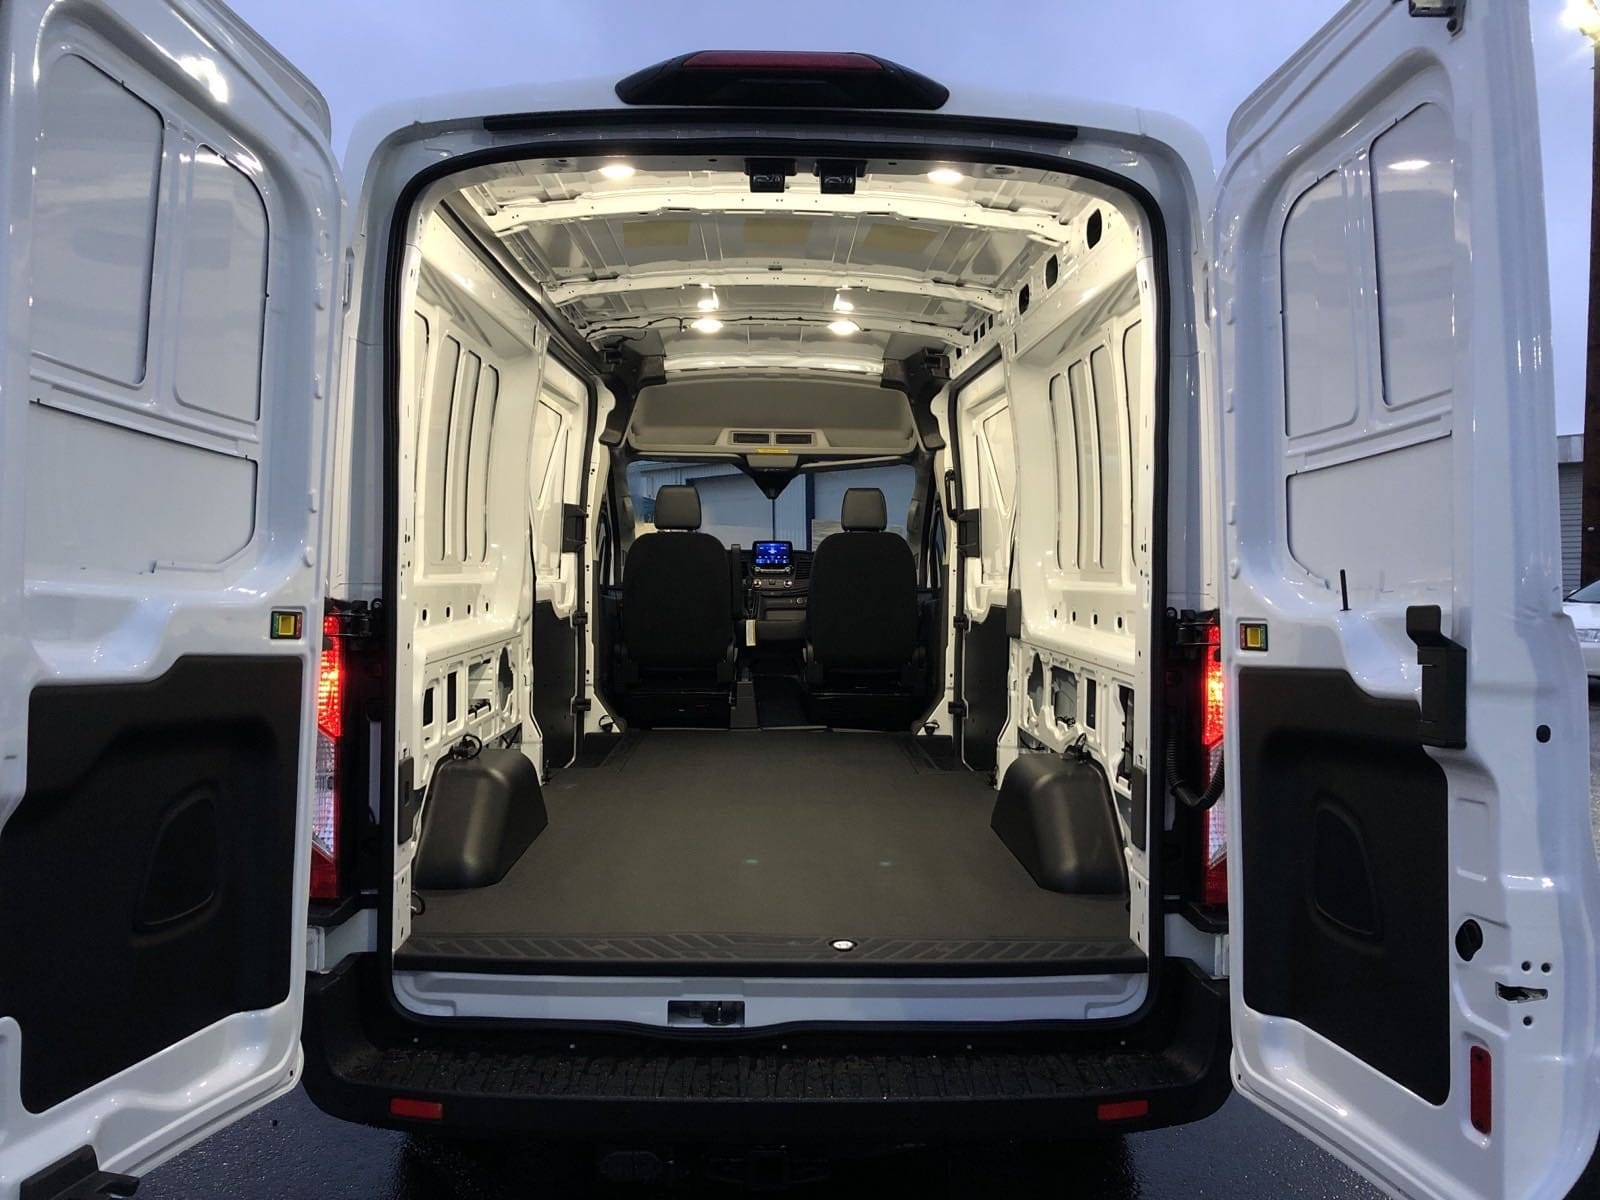 2020 Transit 250 Med Roof RWD, Empty Cargo Van #208520 - photo 1